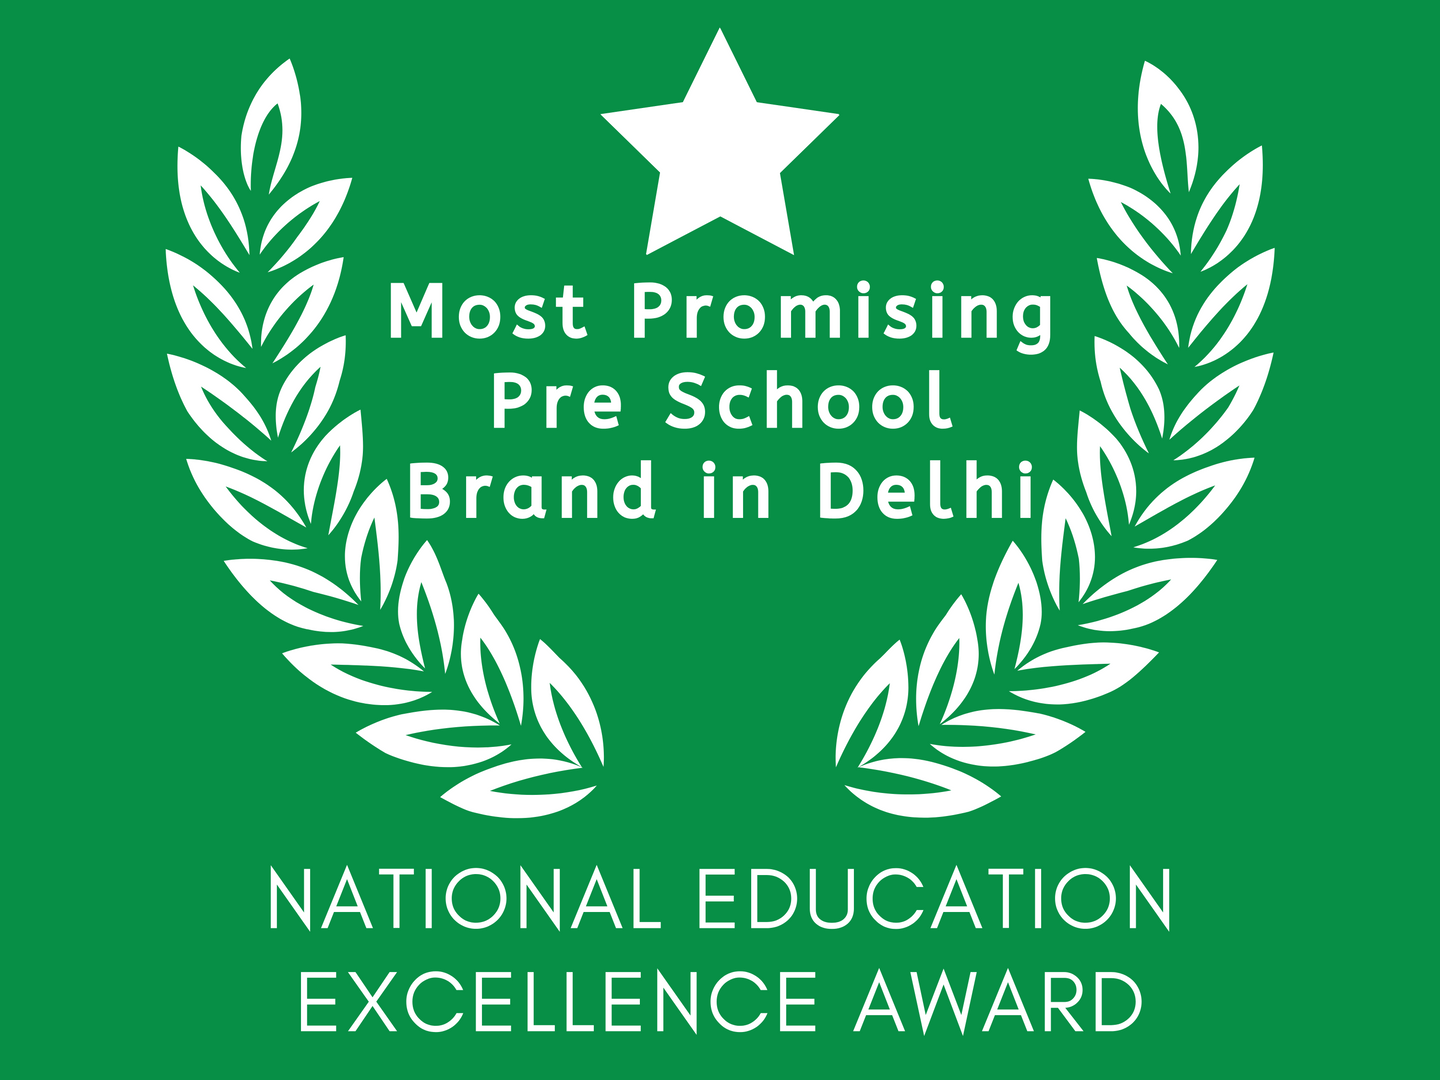 Most Promising Pre School Brand in Delhi